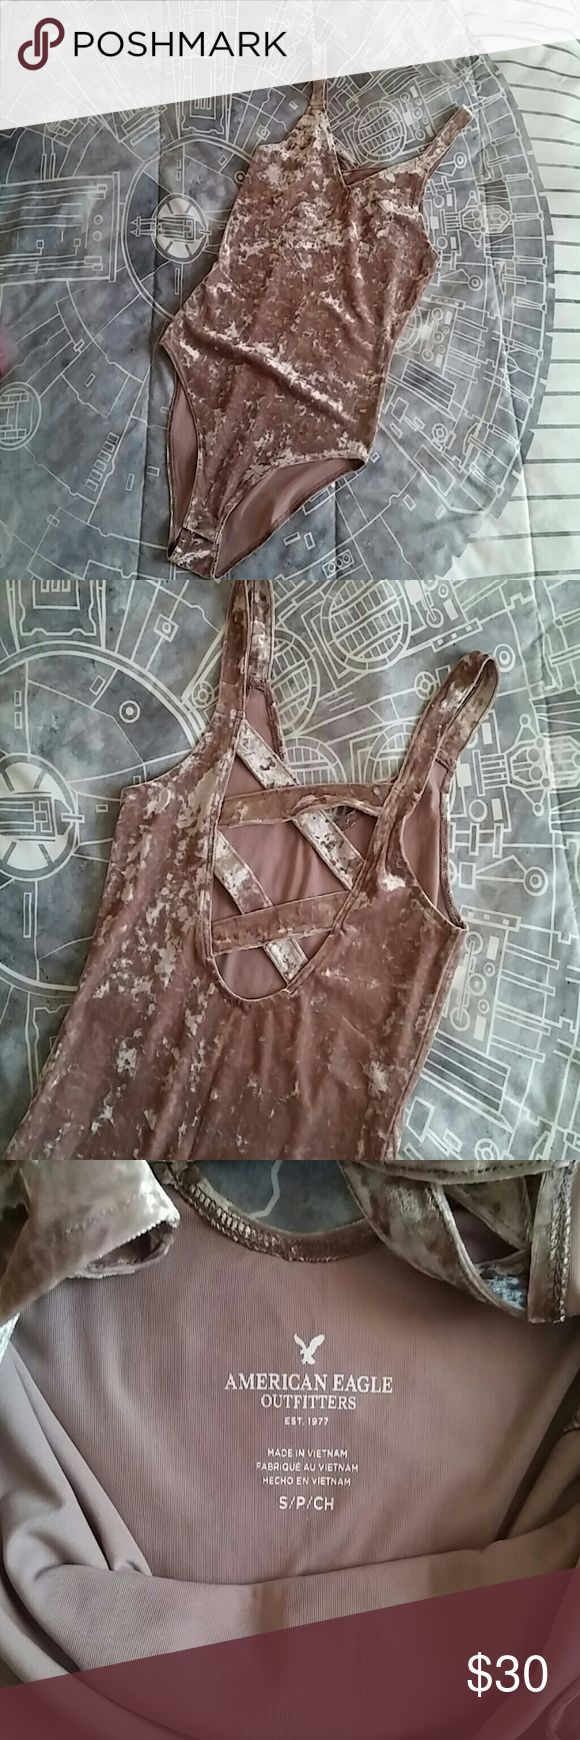 American eagle velvet pink bodysuit NWOT Out of stock online Size small Never worn Brand new American Eagle Outfitters Tops